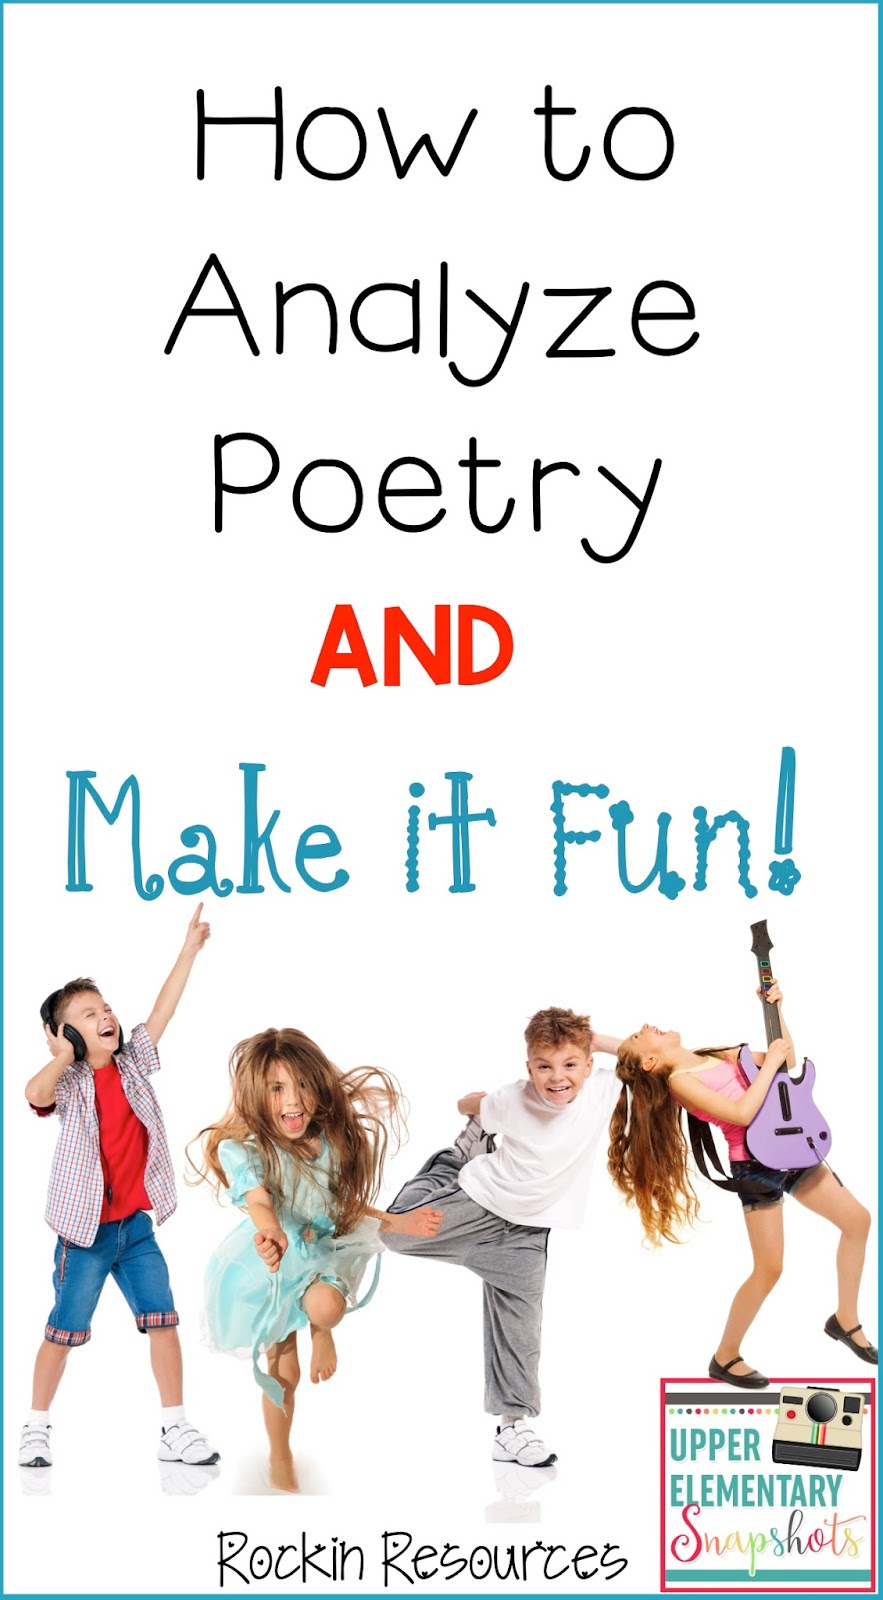 Upper Elementary Snapshots HOW TO ANALYZE POETRY and MAKE IT FUN – Analyzing Poetry Worksheet